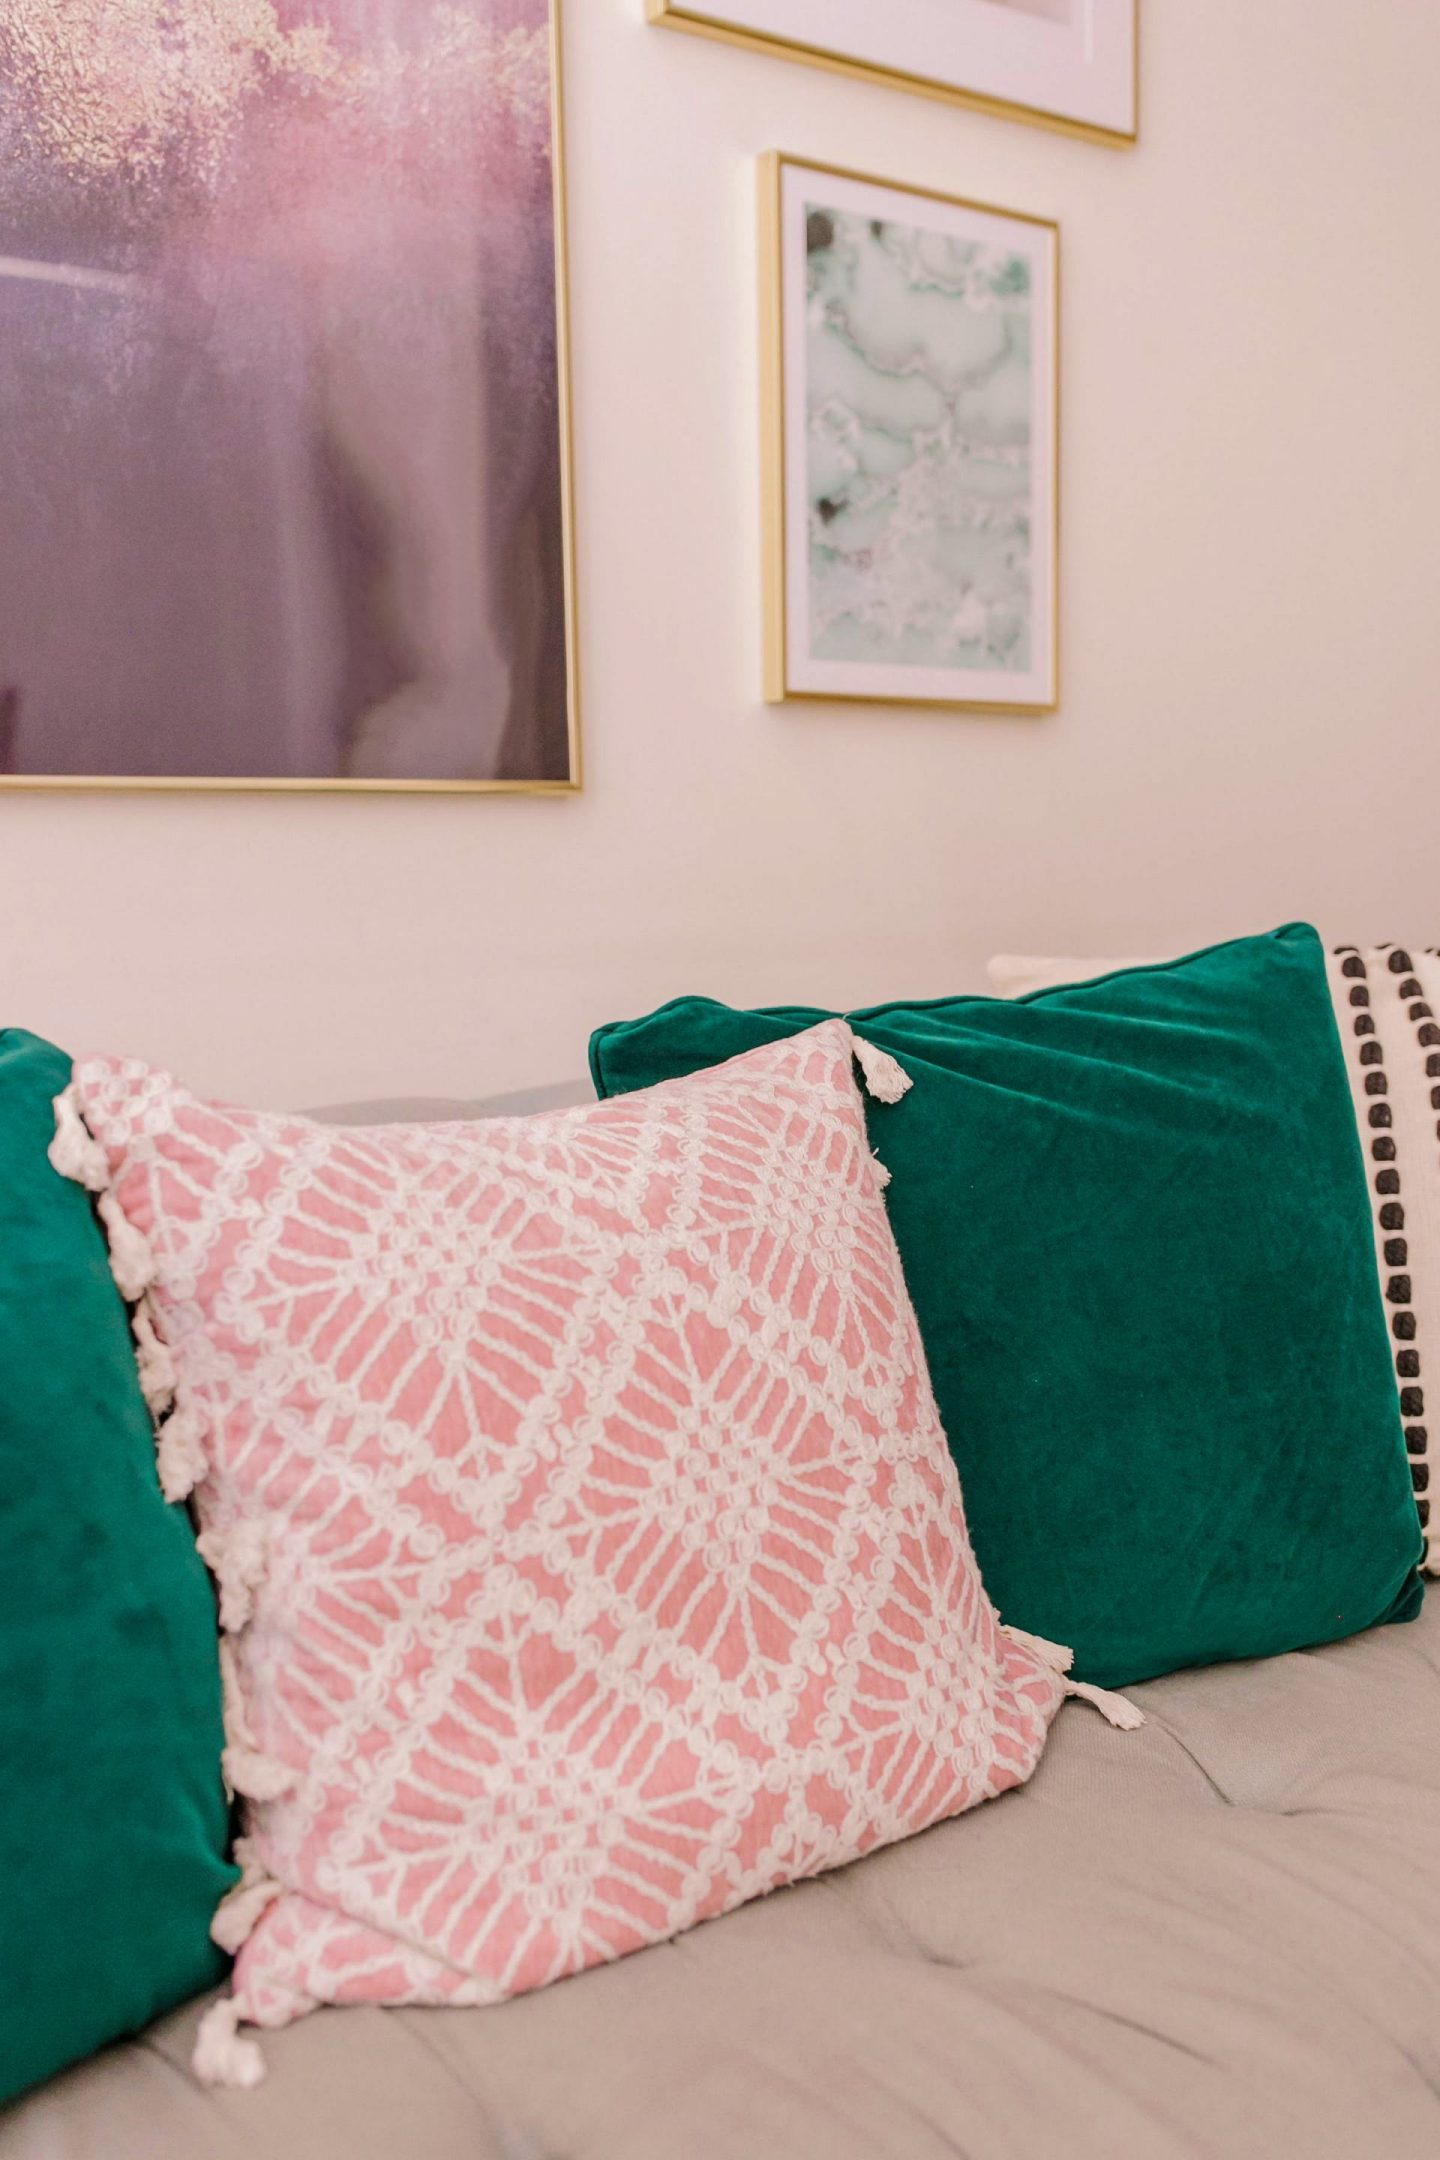 Refreshing your livingroom by simply updating your pillows